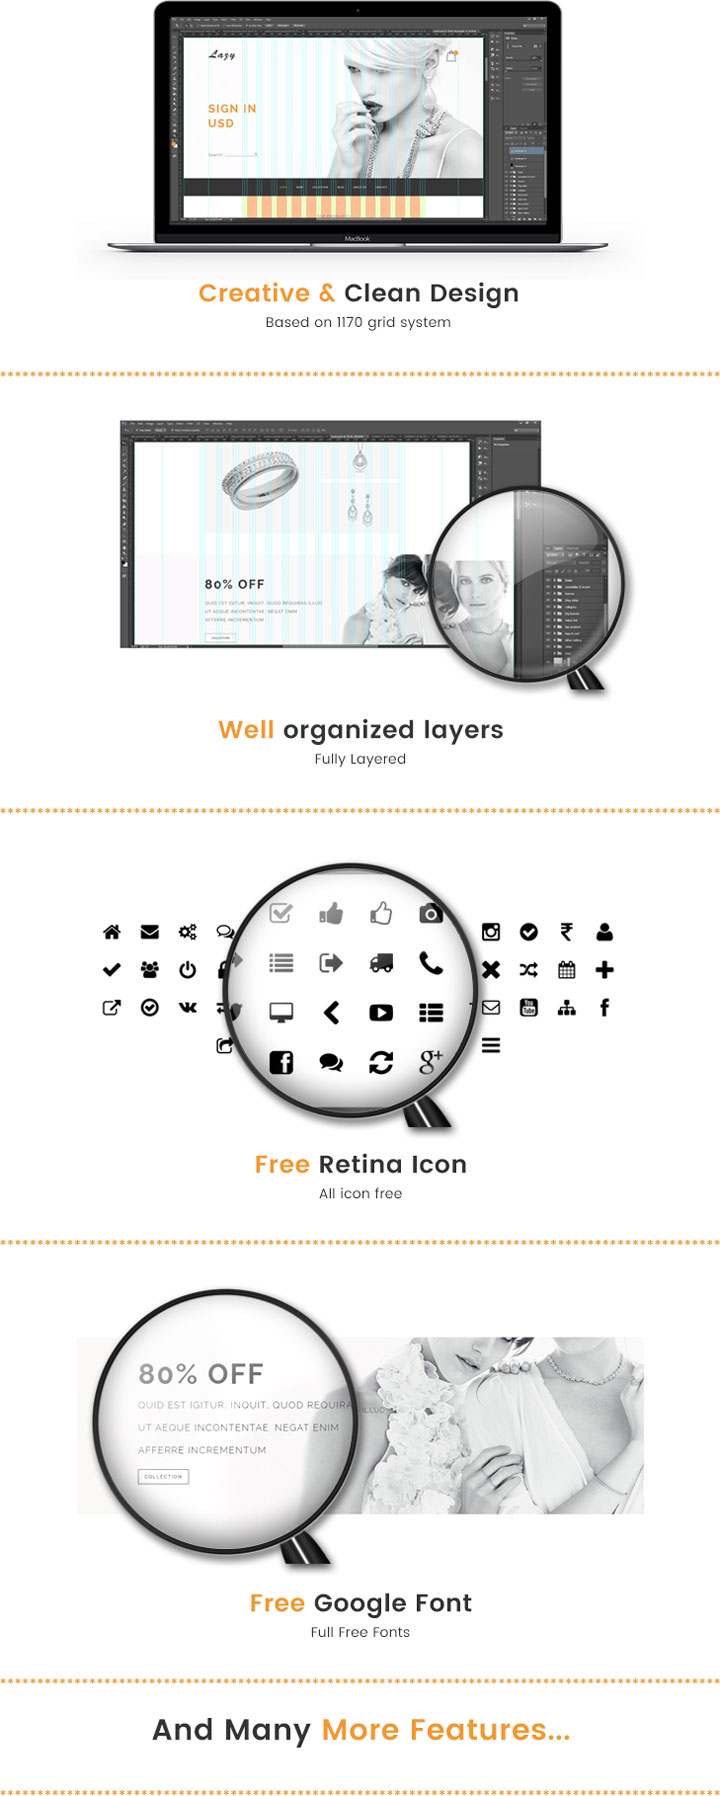 themetidy-Lazy---Jewellery-Online-Store-eCommerce-PSD-Template-description-feature-list-image